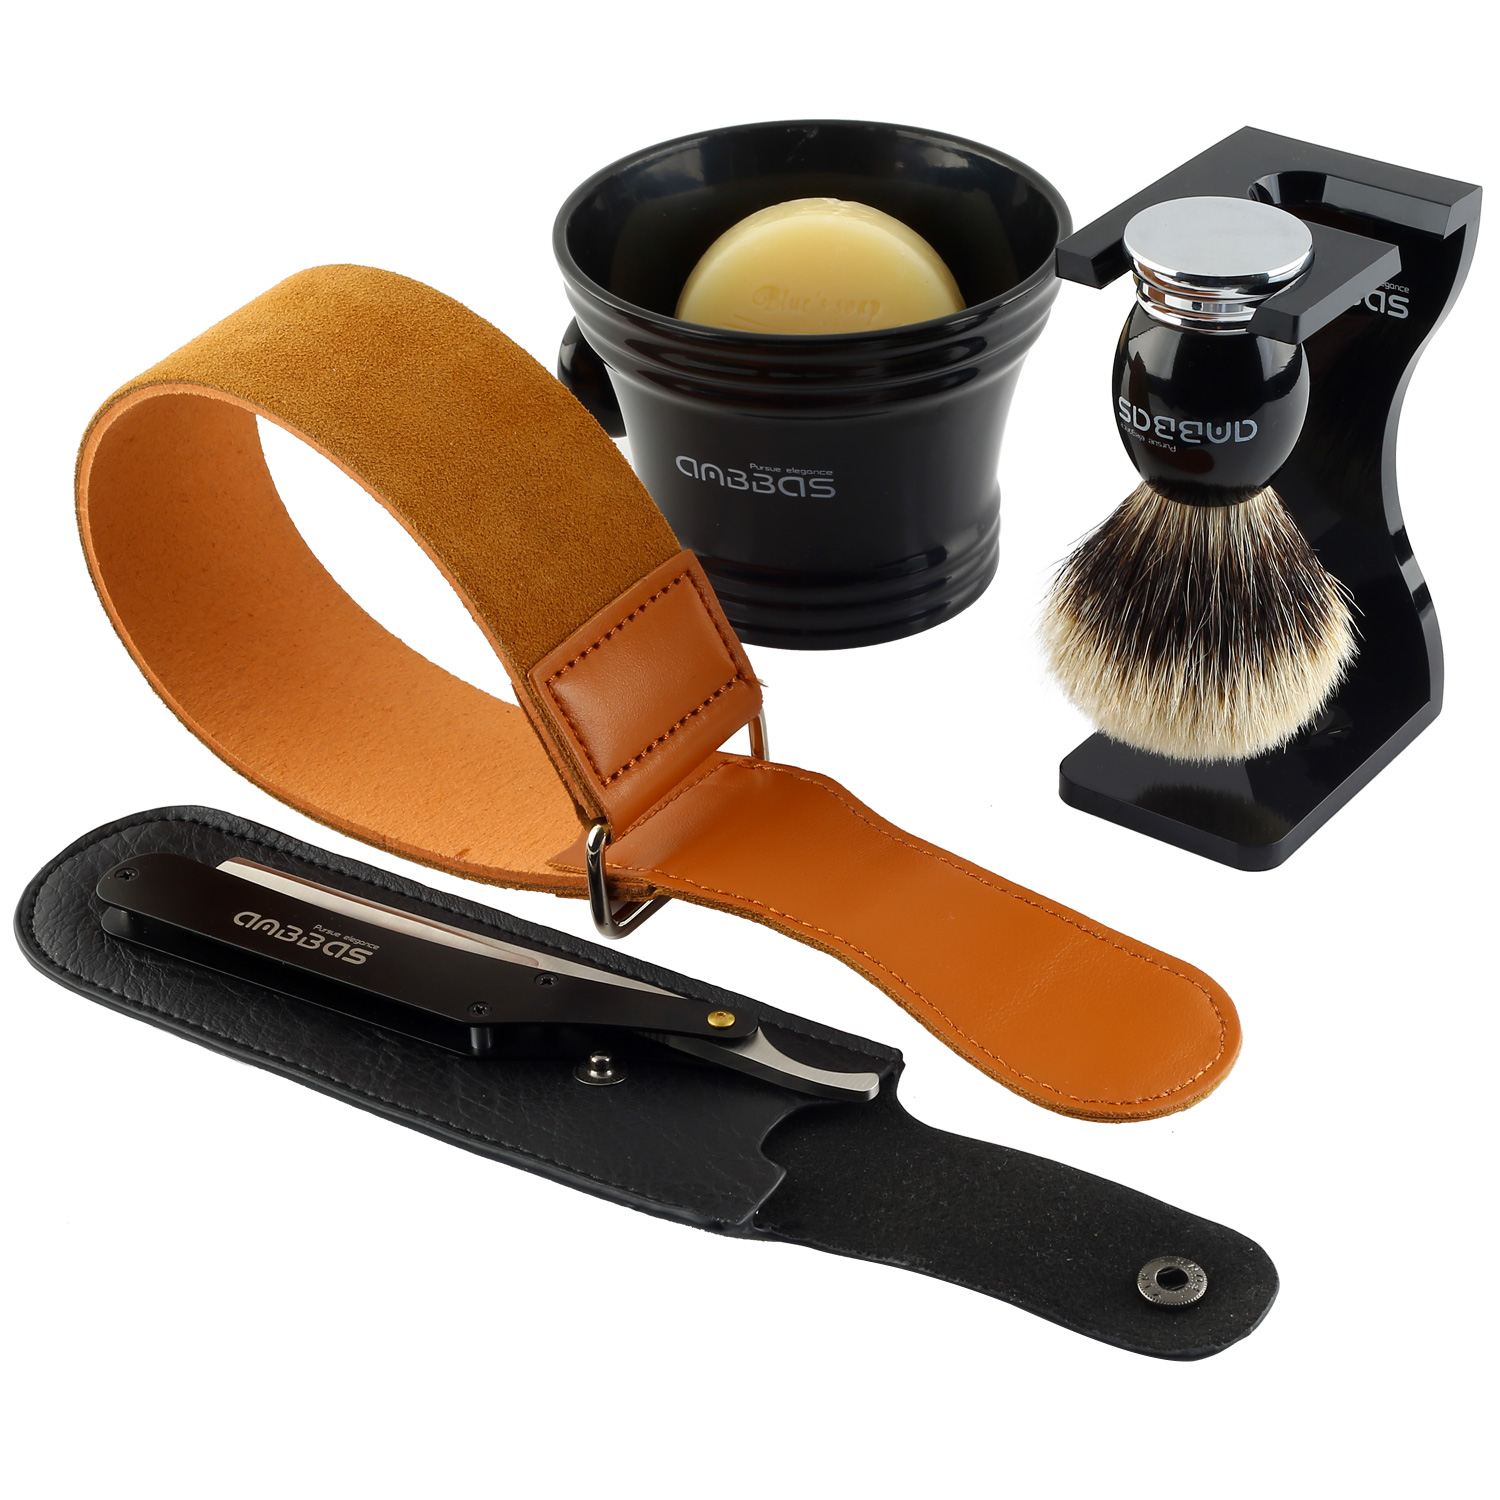 Shaving Brush Silvertip Badger Hair,7in1 Kit 7pcs Men Shaving Set with Shaving Stand Mug Soap Straight Edge Razor Leather StropShaving Brush Silvertip Badger Hair,7in1 Kit 7pcs Men Shaving Set with Shaving Stand Mug Soap Straight Edge Razor Leather Strop